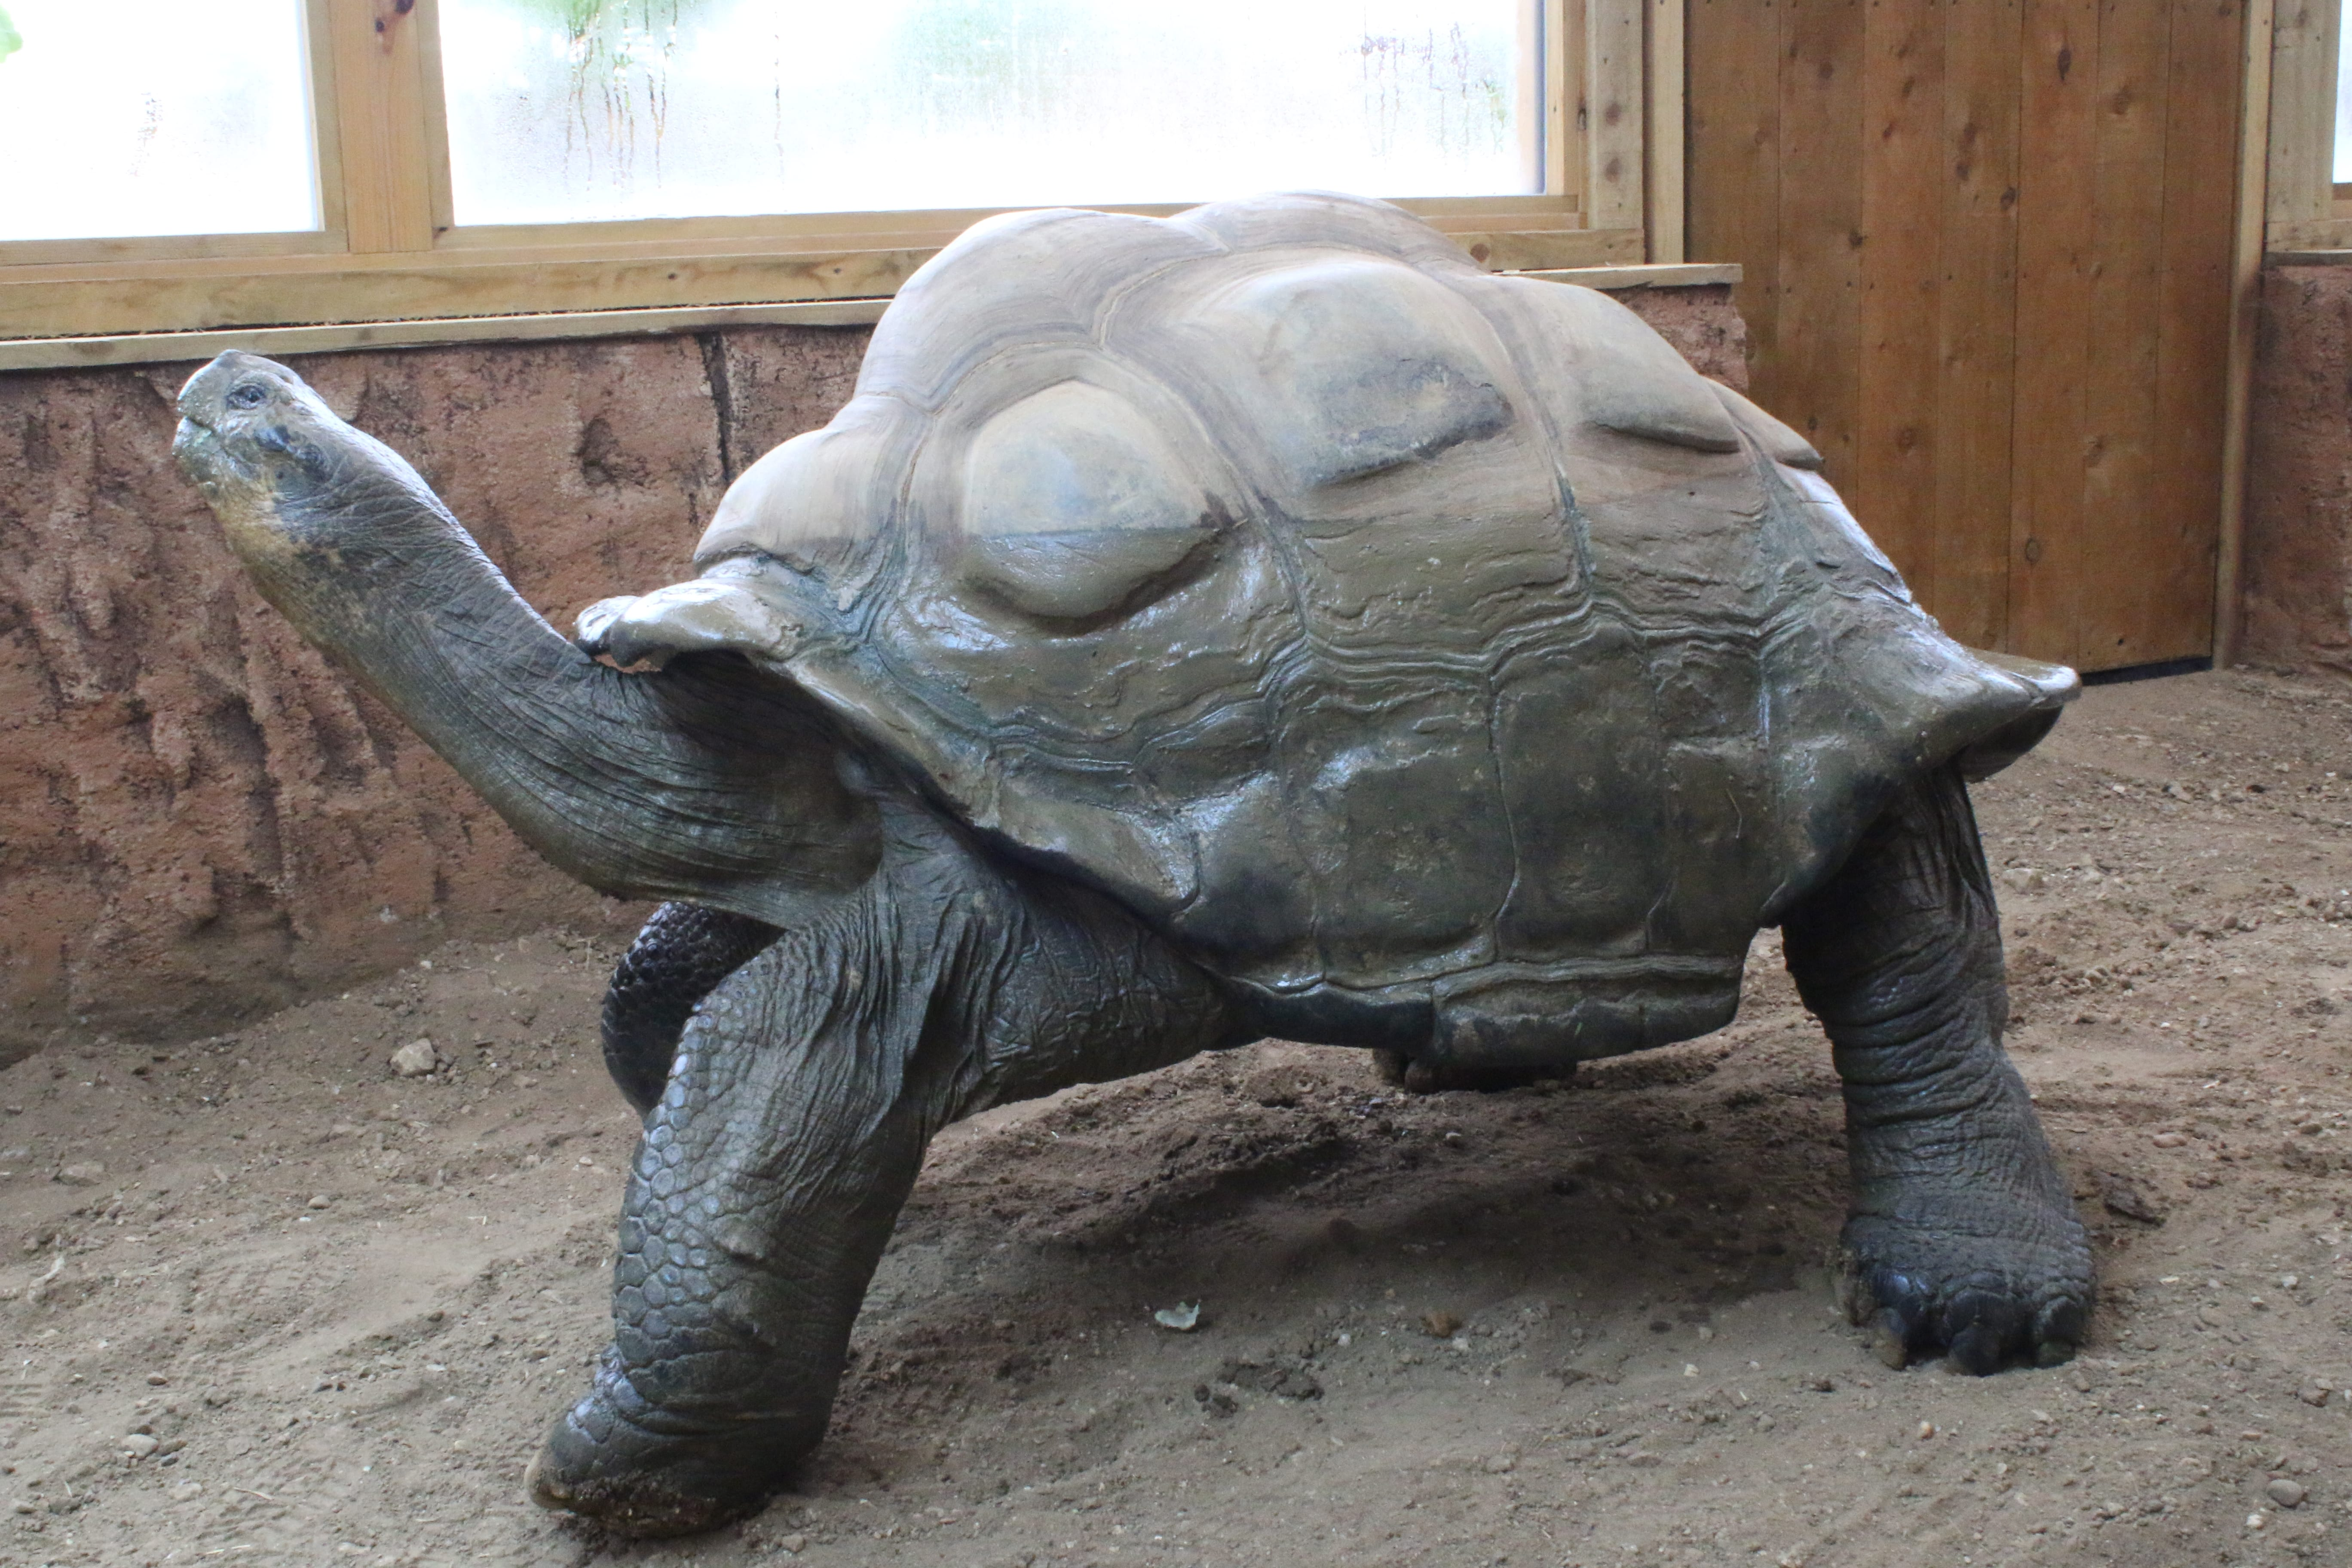 Giant Galapagos Tortoise Experience